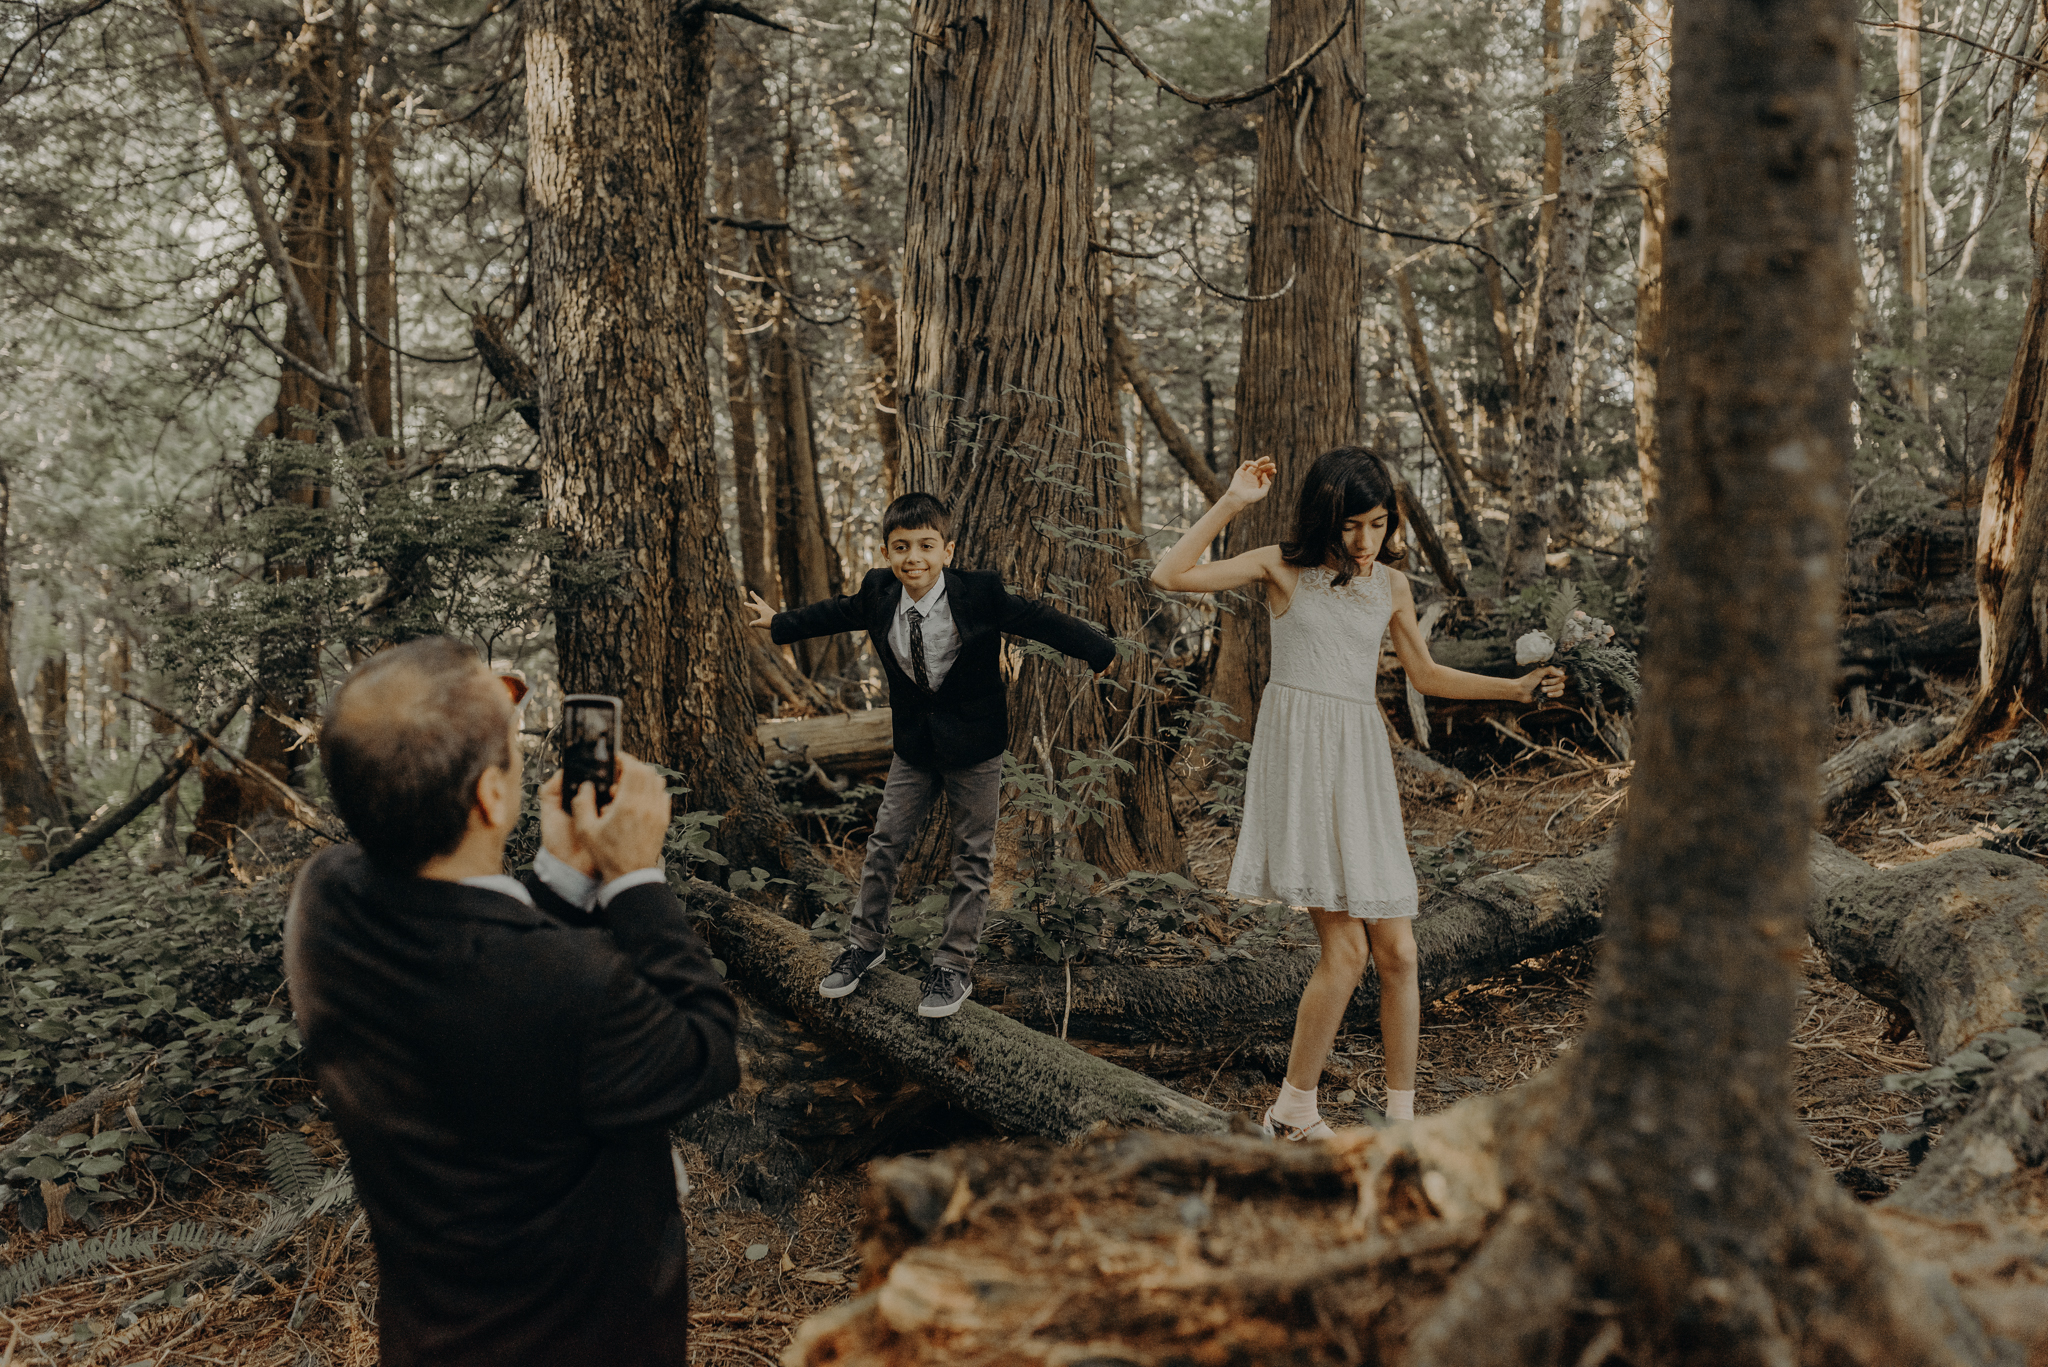 Isaiah + Taylor Photography - Cape Flattery Elopement, Olympia National Forest Wedding Photographer-031.jpg